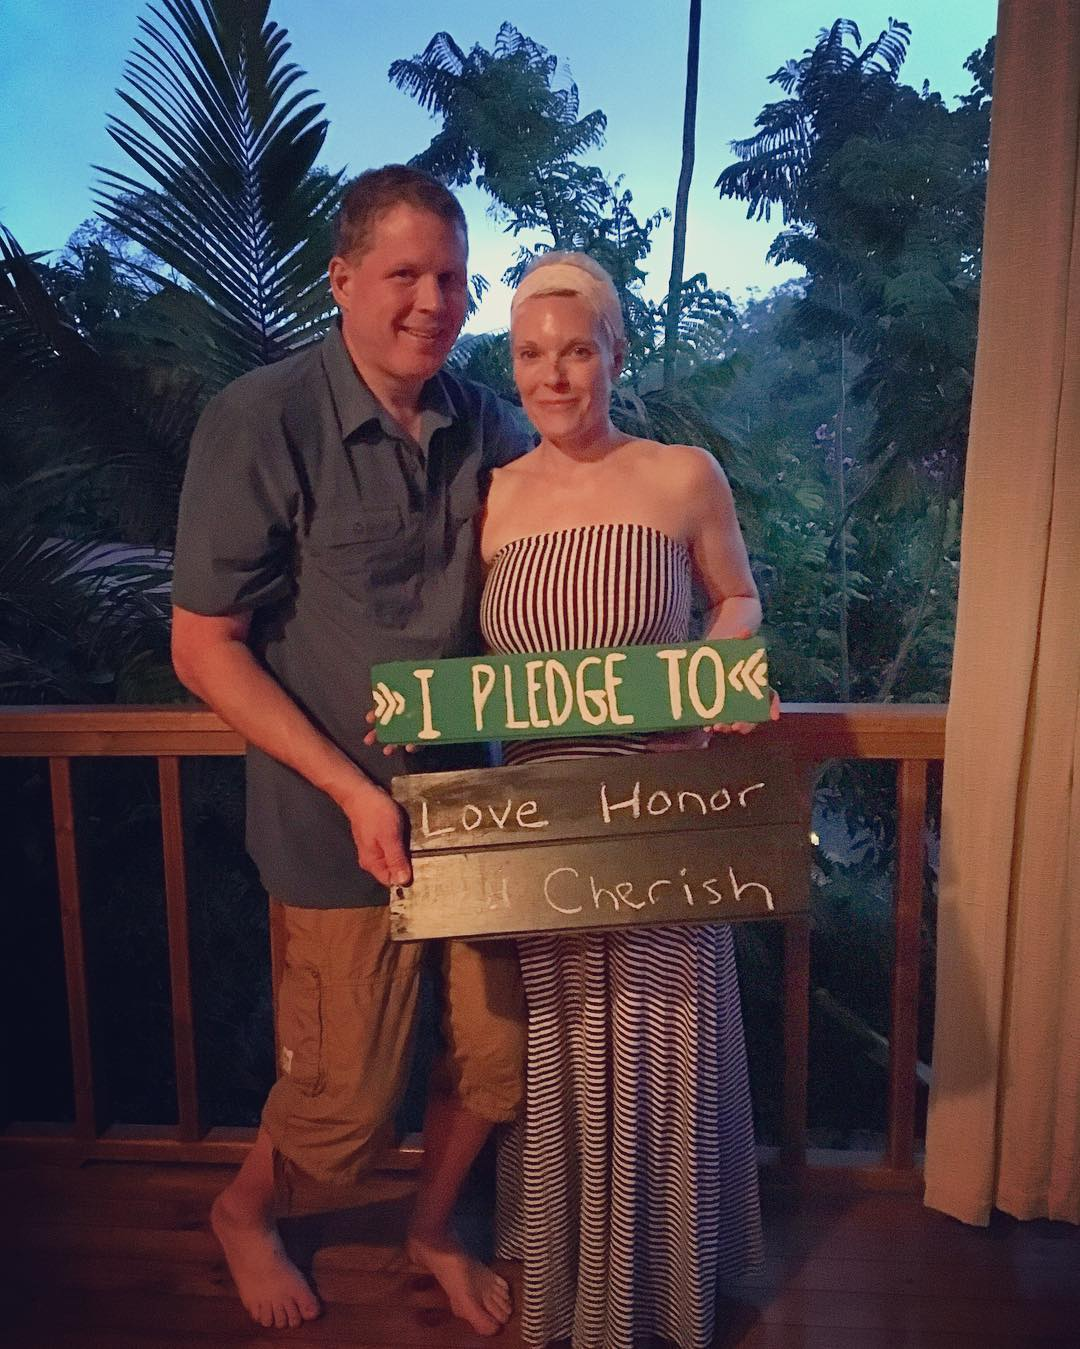 Last night, we helped our guests and new friends, Stacey and Ward from Minnesota, in renewing their wedding vows for their 25th anniversary. What an inspiration, and what a way to end a wonderful week of surfing and yoga in Costa Rica! Congrats you...